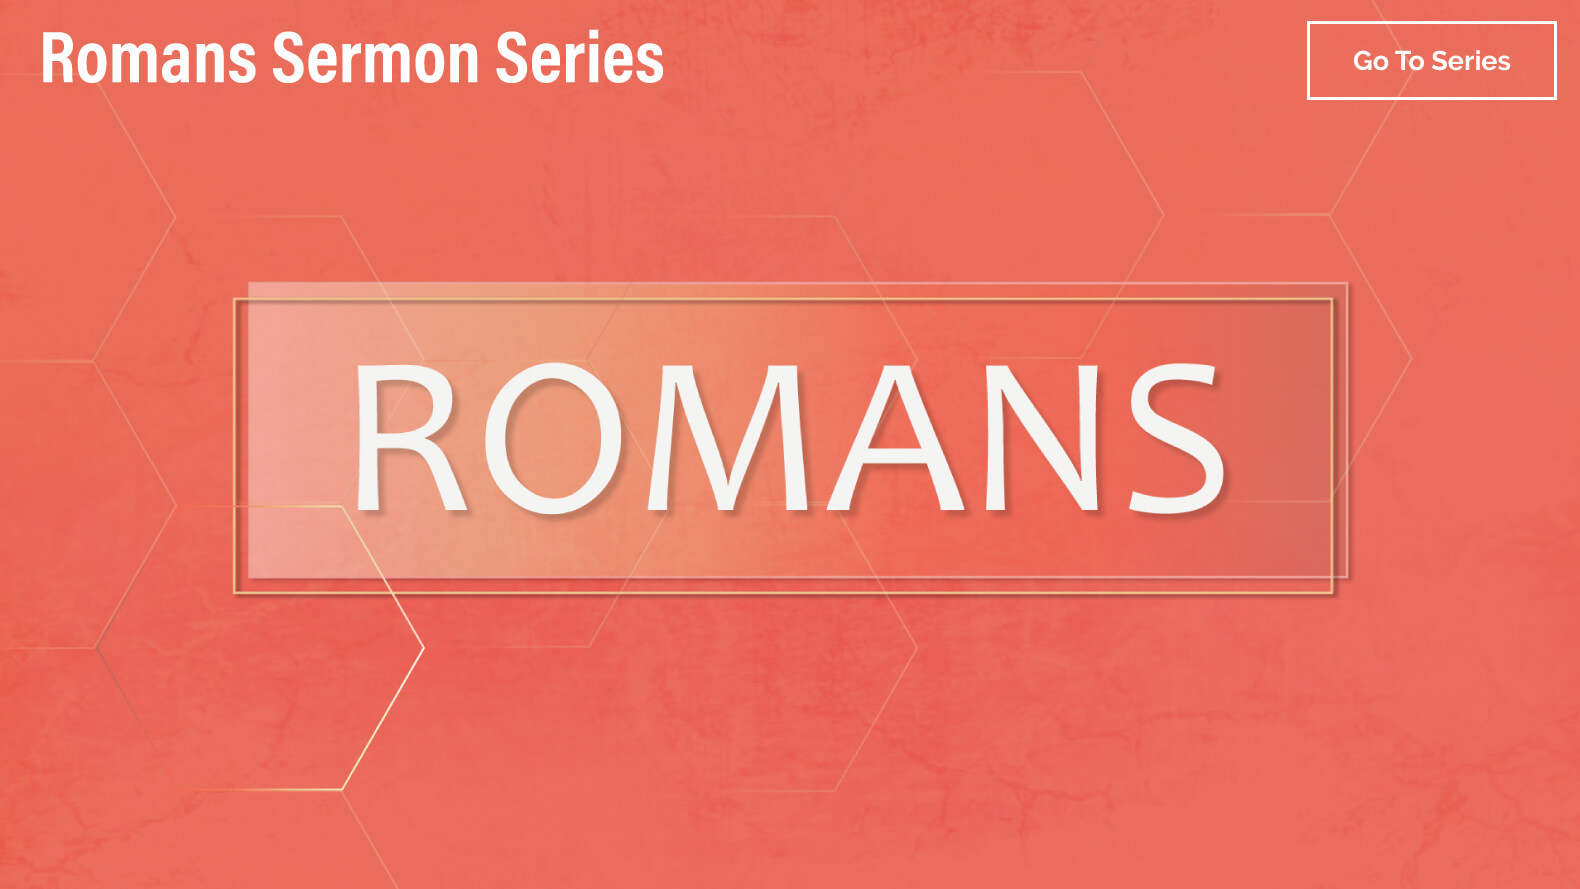 Romans-Sermon-Series-Image